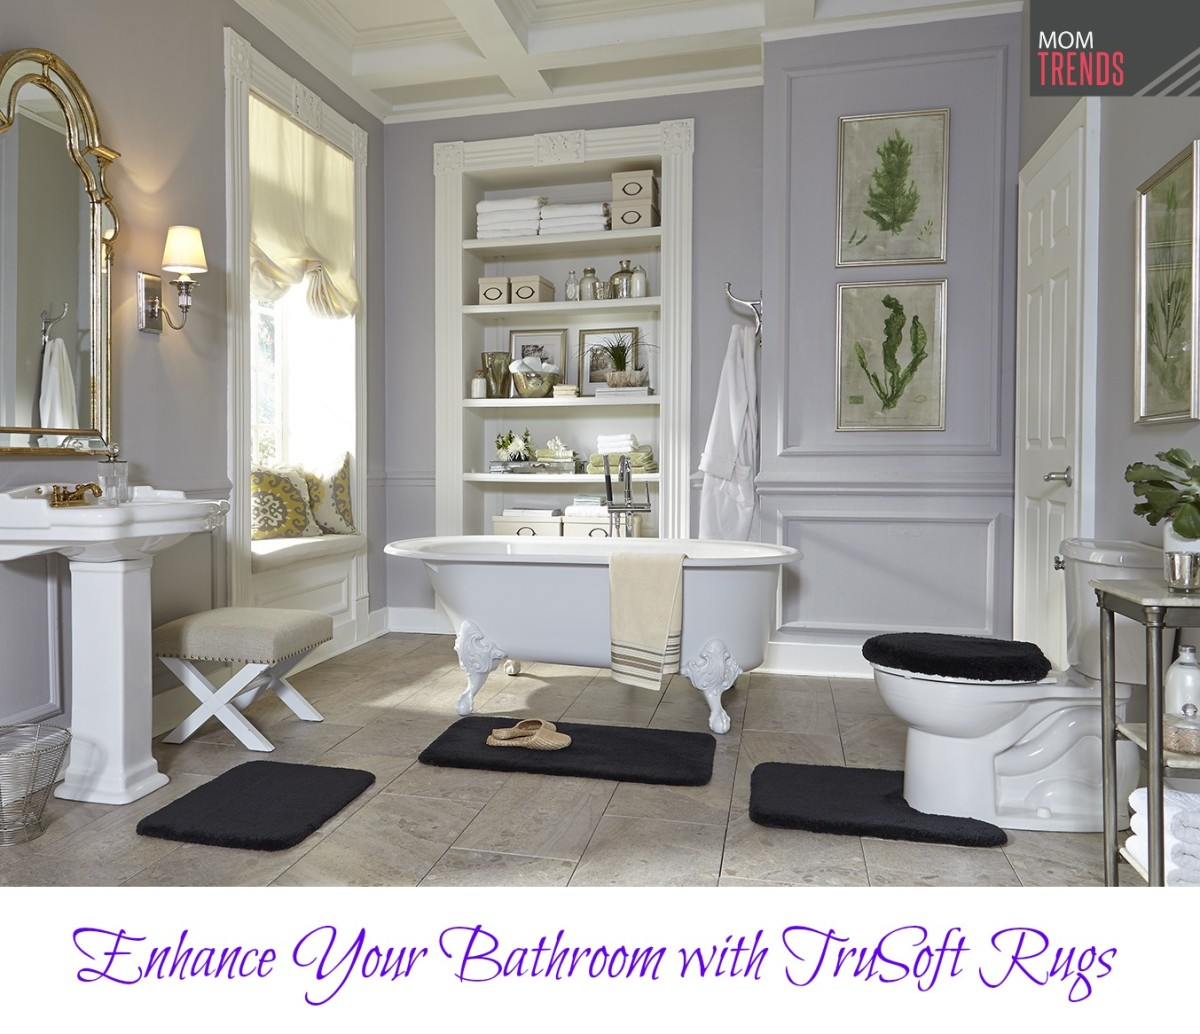 Enhance Your Bathroom with TruSoft Rugs